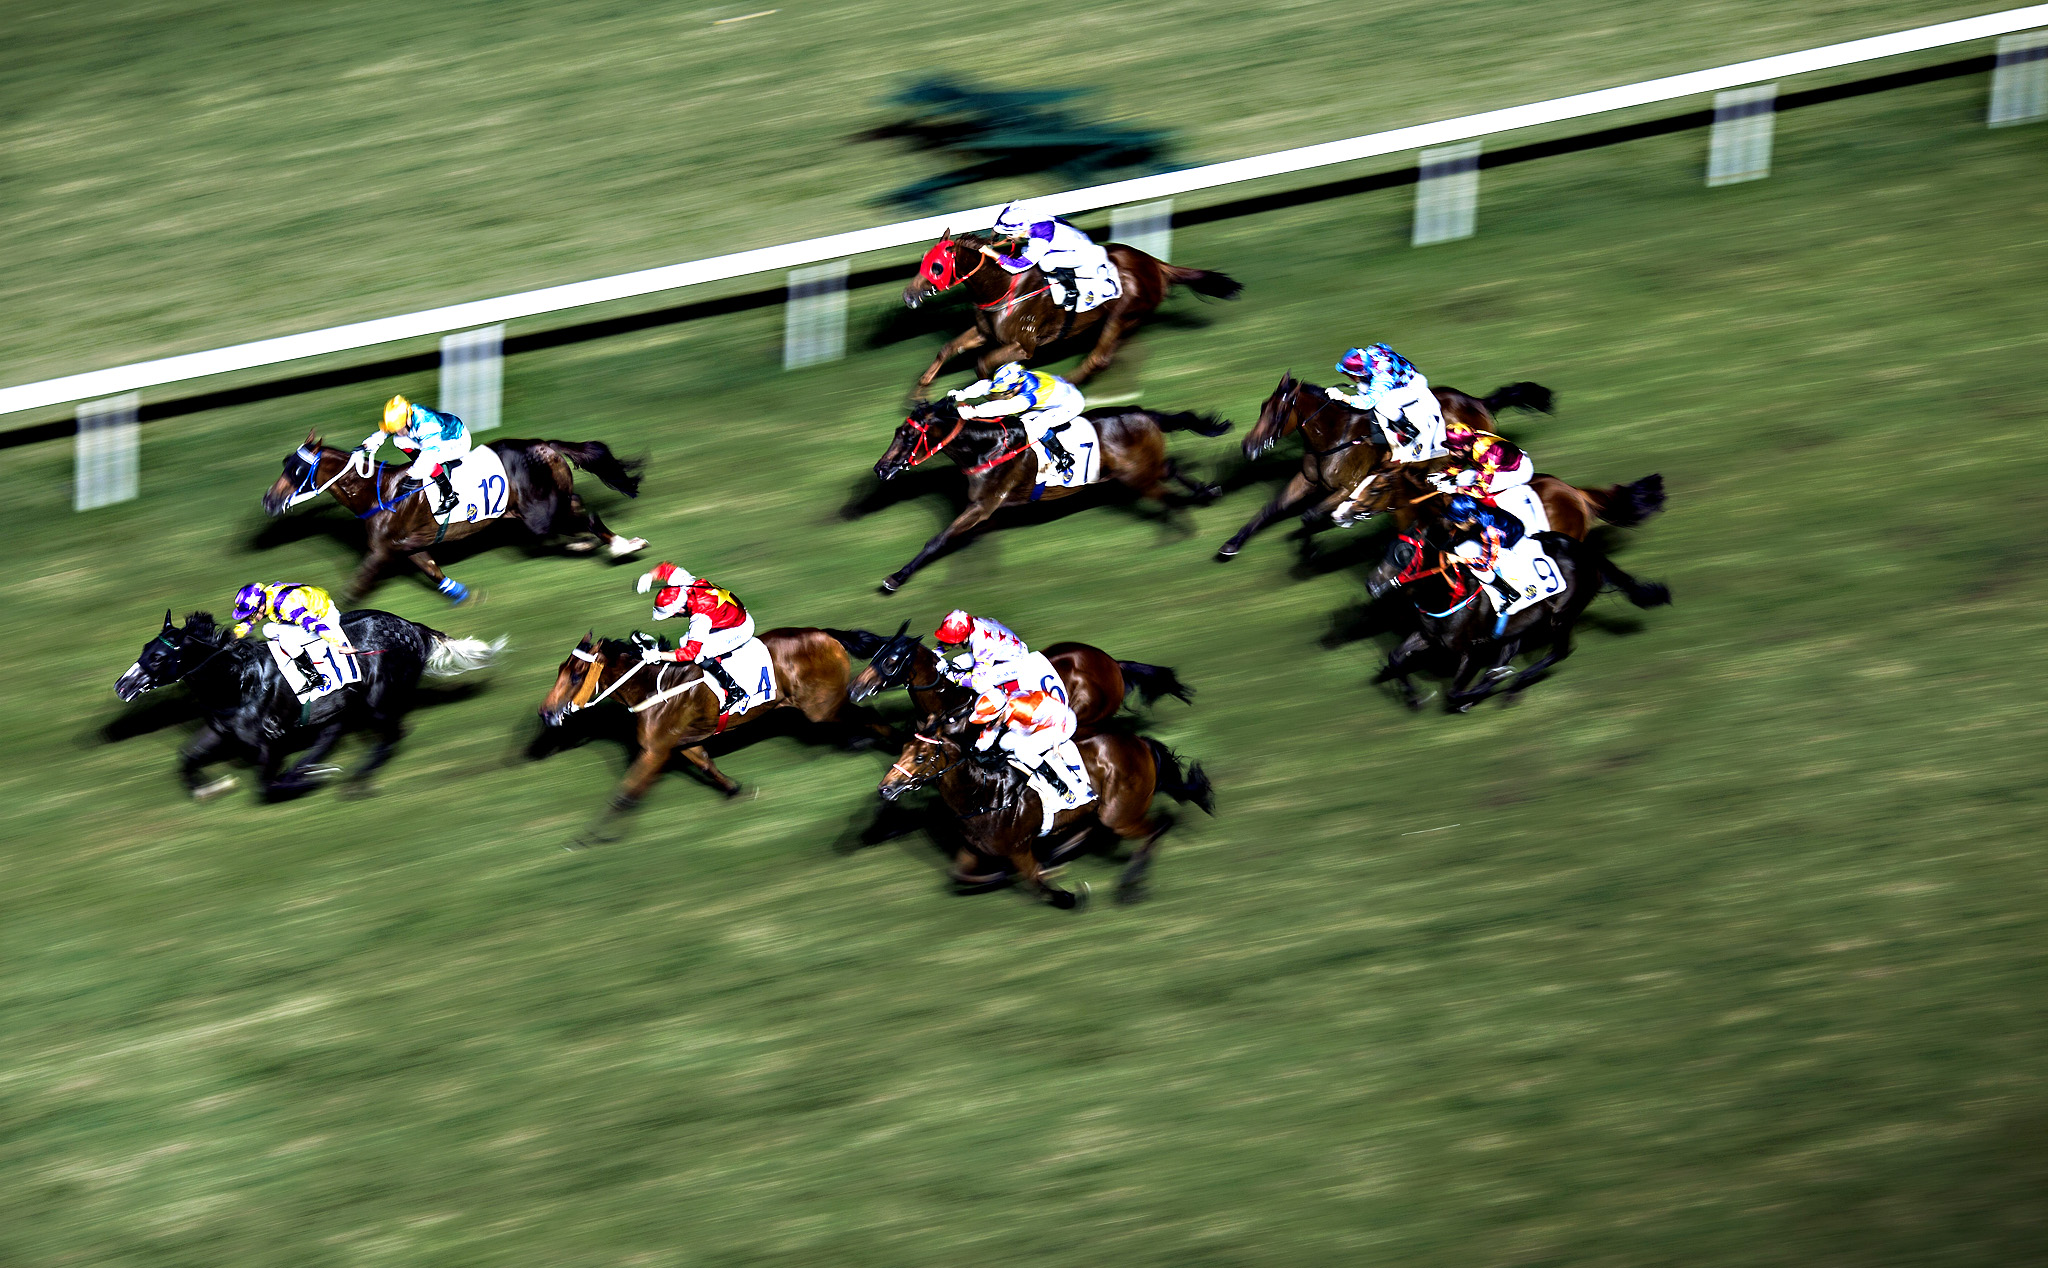 Horses gallop on the track during a race at the Hong Kong Jockey Club's Happy Valley racecourse in Hong Kong, China. The Hong Kong Jockey Club is the city's sole provider of horse racing, football betting and lotteries